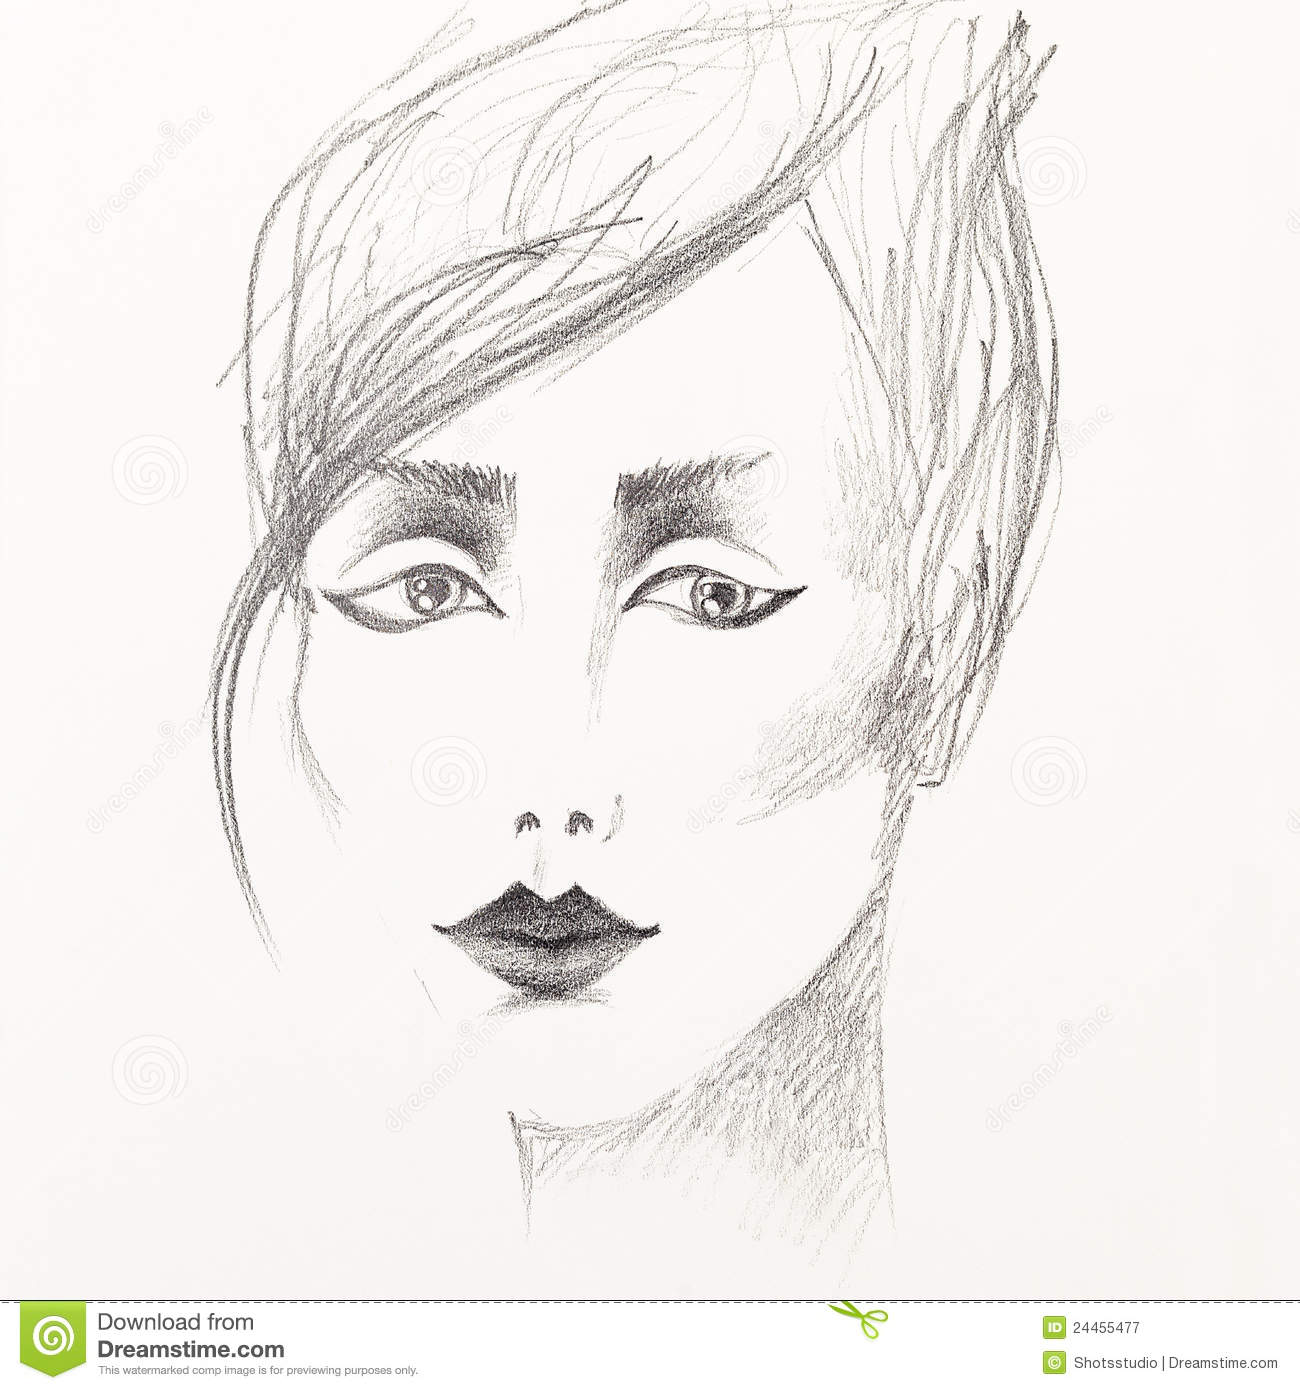 Pencil Drawing Pictures Free Download Pencil Sketch